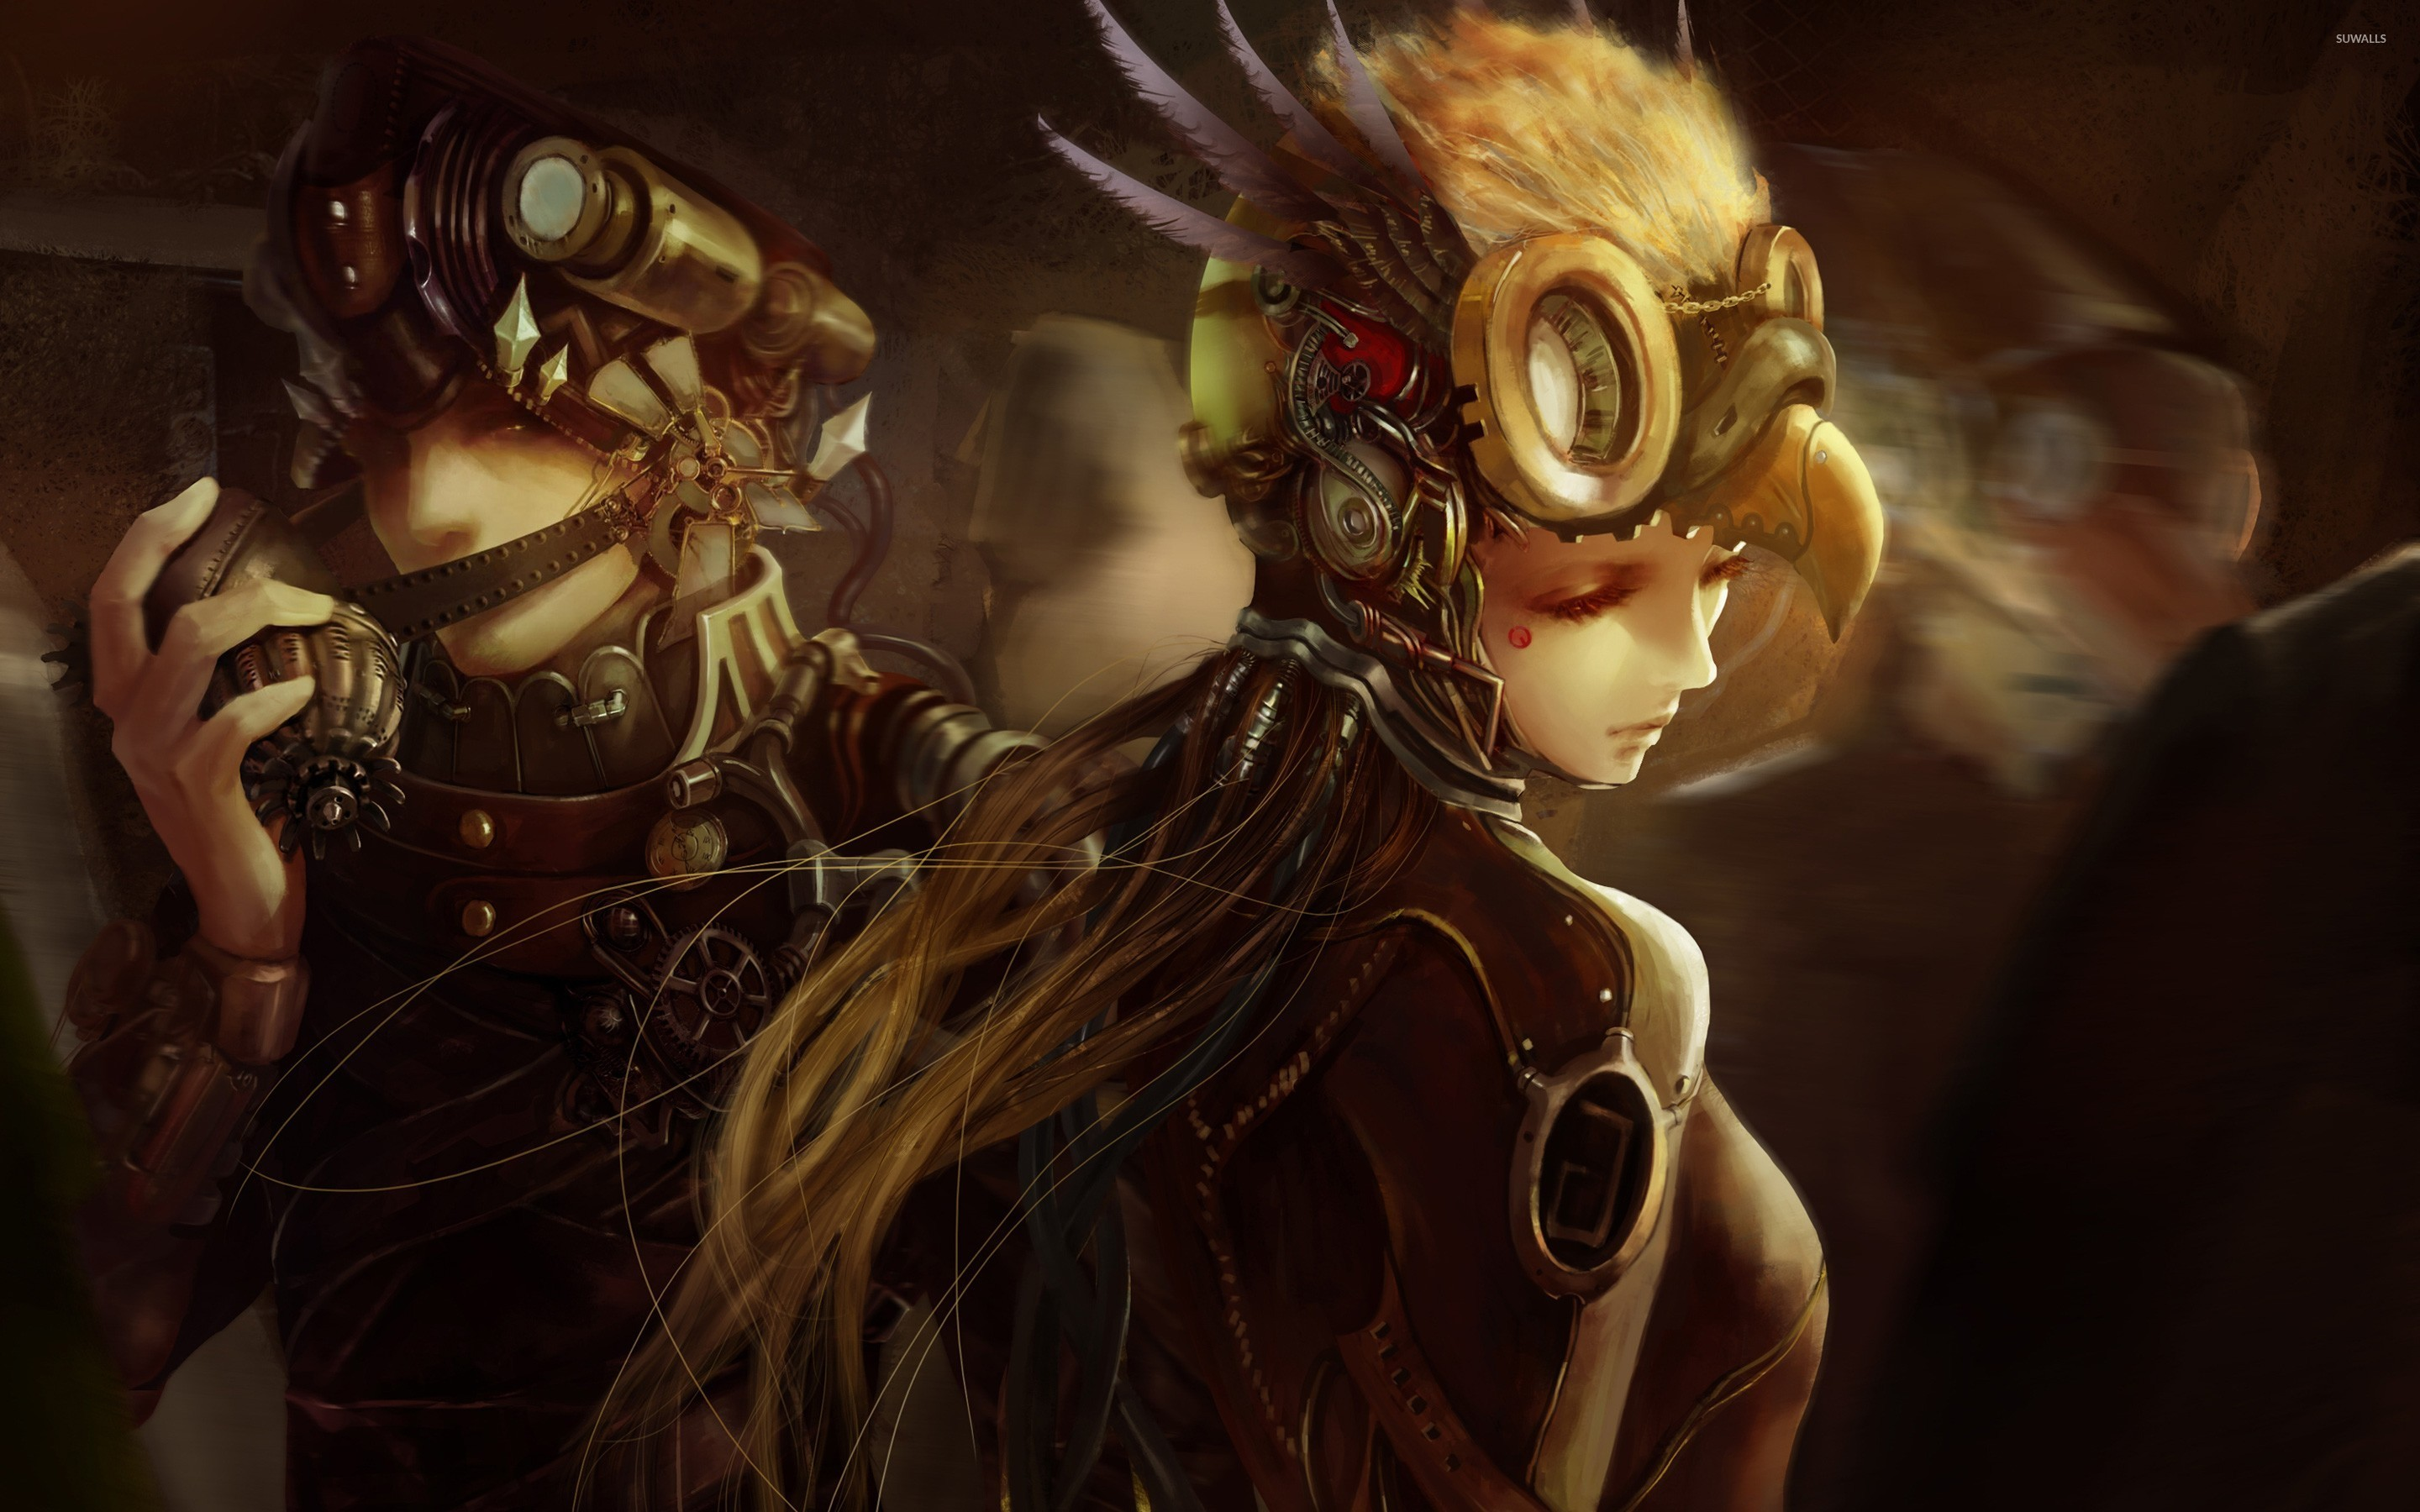 Steampunk soldiers wallpaper   Fantasy wallpapers   25356 2880x1800